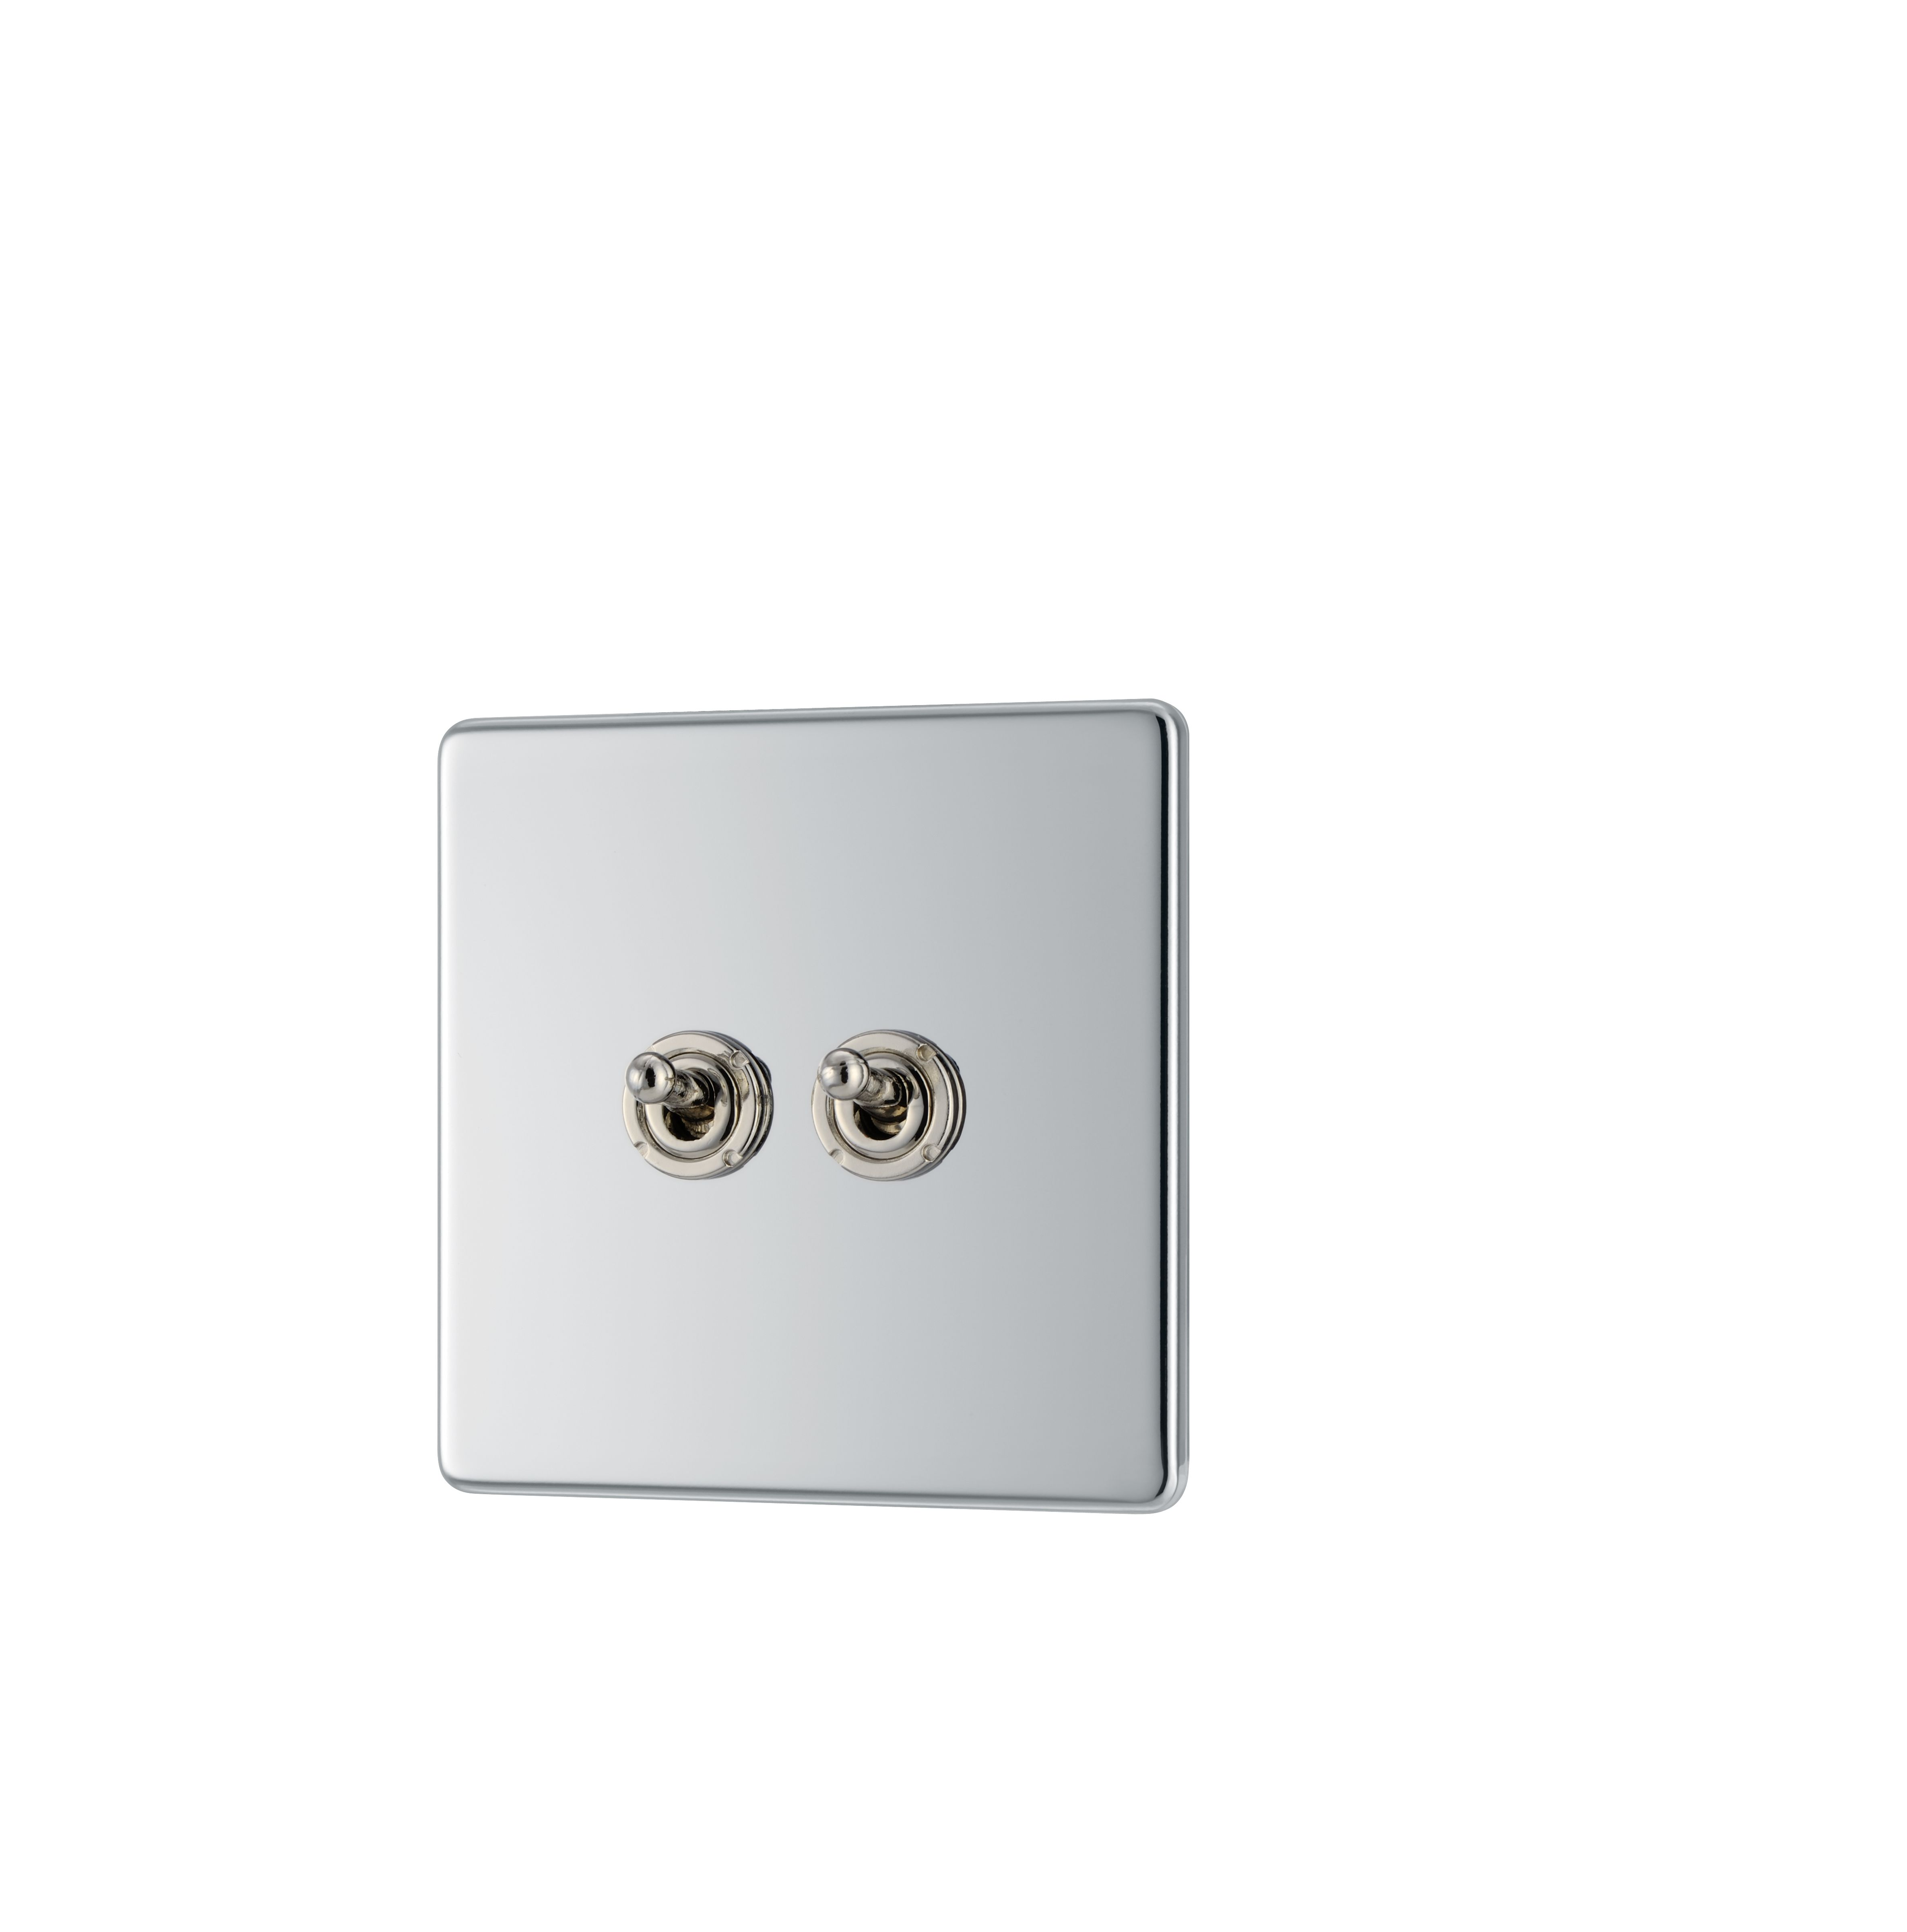 Bathroom Light Switches B&Q dimmers, sockets & switches | light switches